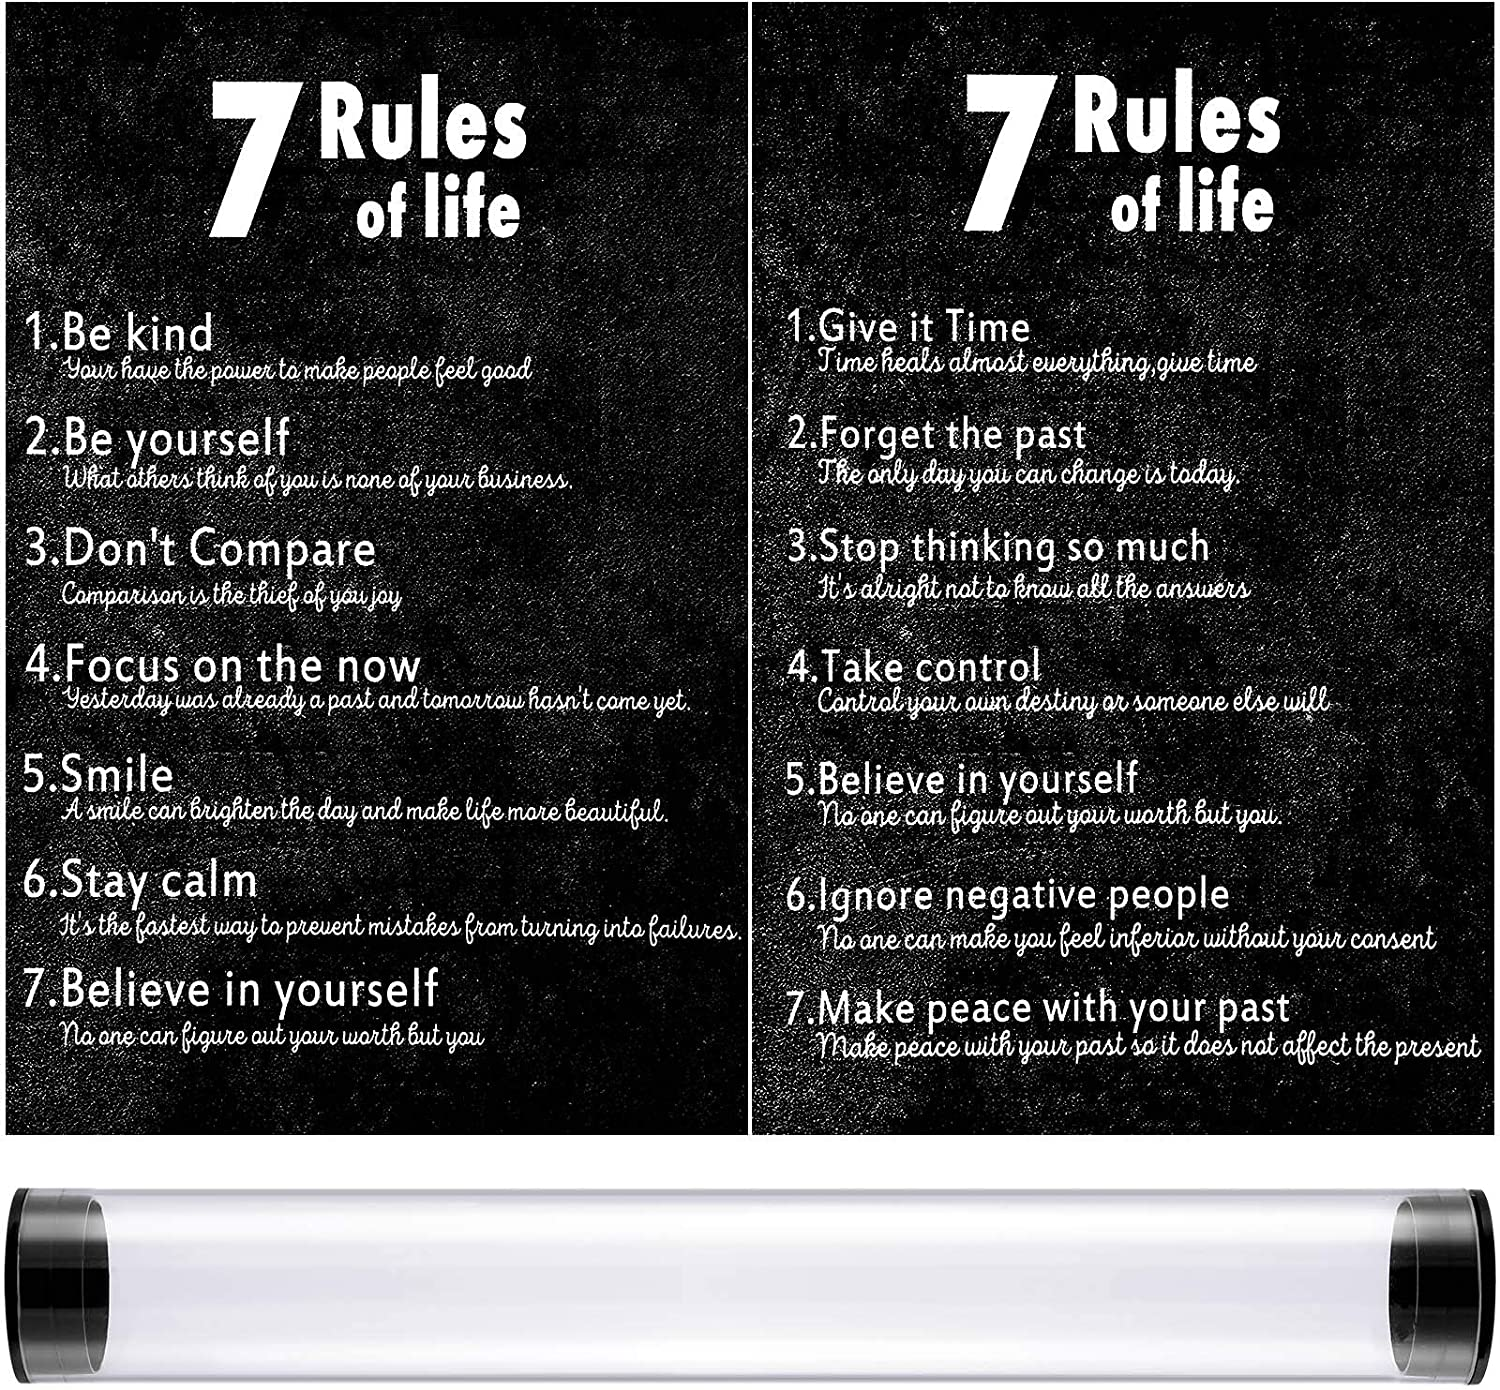 Zonon 2 Pieces 7 Rules of Life Motivational Posters 11.7 x 16.5 Inches 2 Styles Inspirational Quotes Canvas Poster Positive Motivational Wall Art for Office Classroom Home